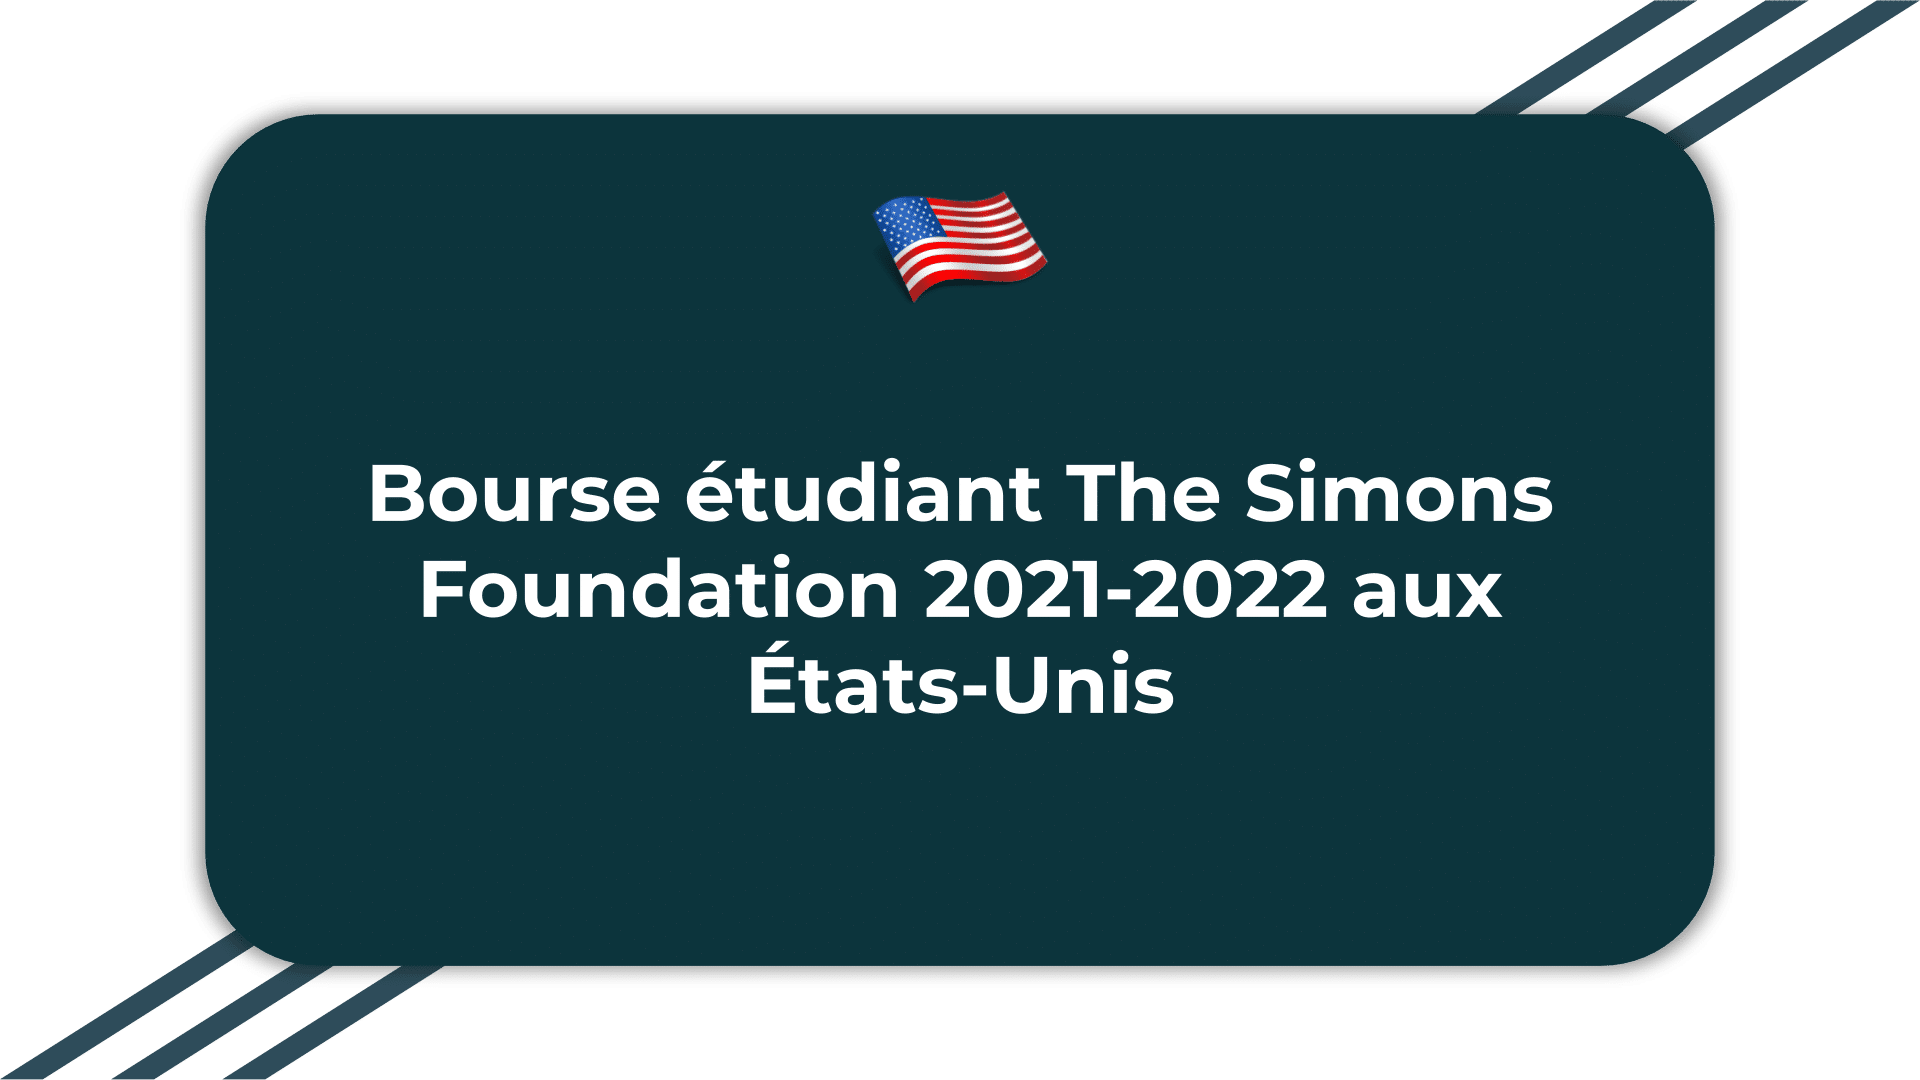 Bourse étudiant The Simons Foundation